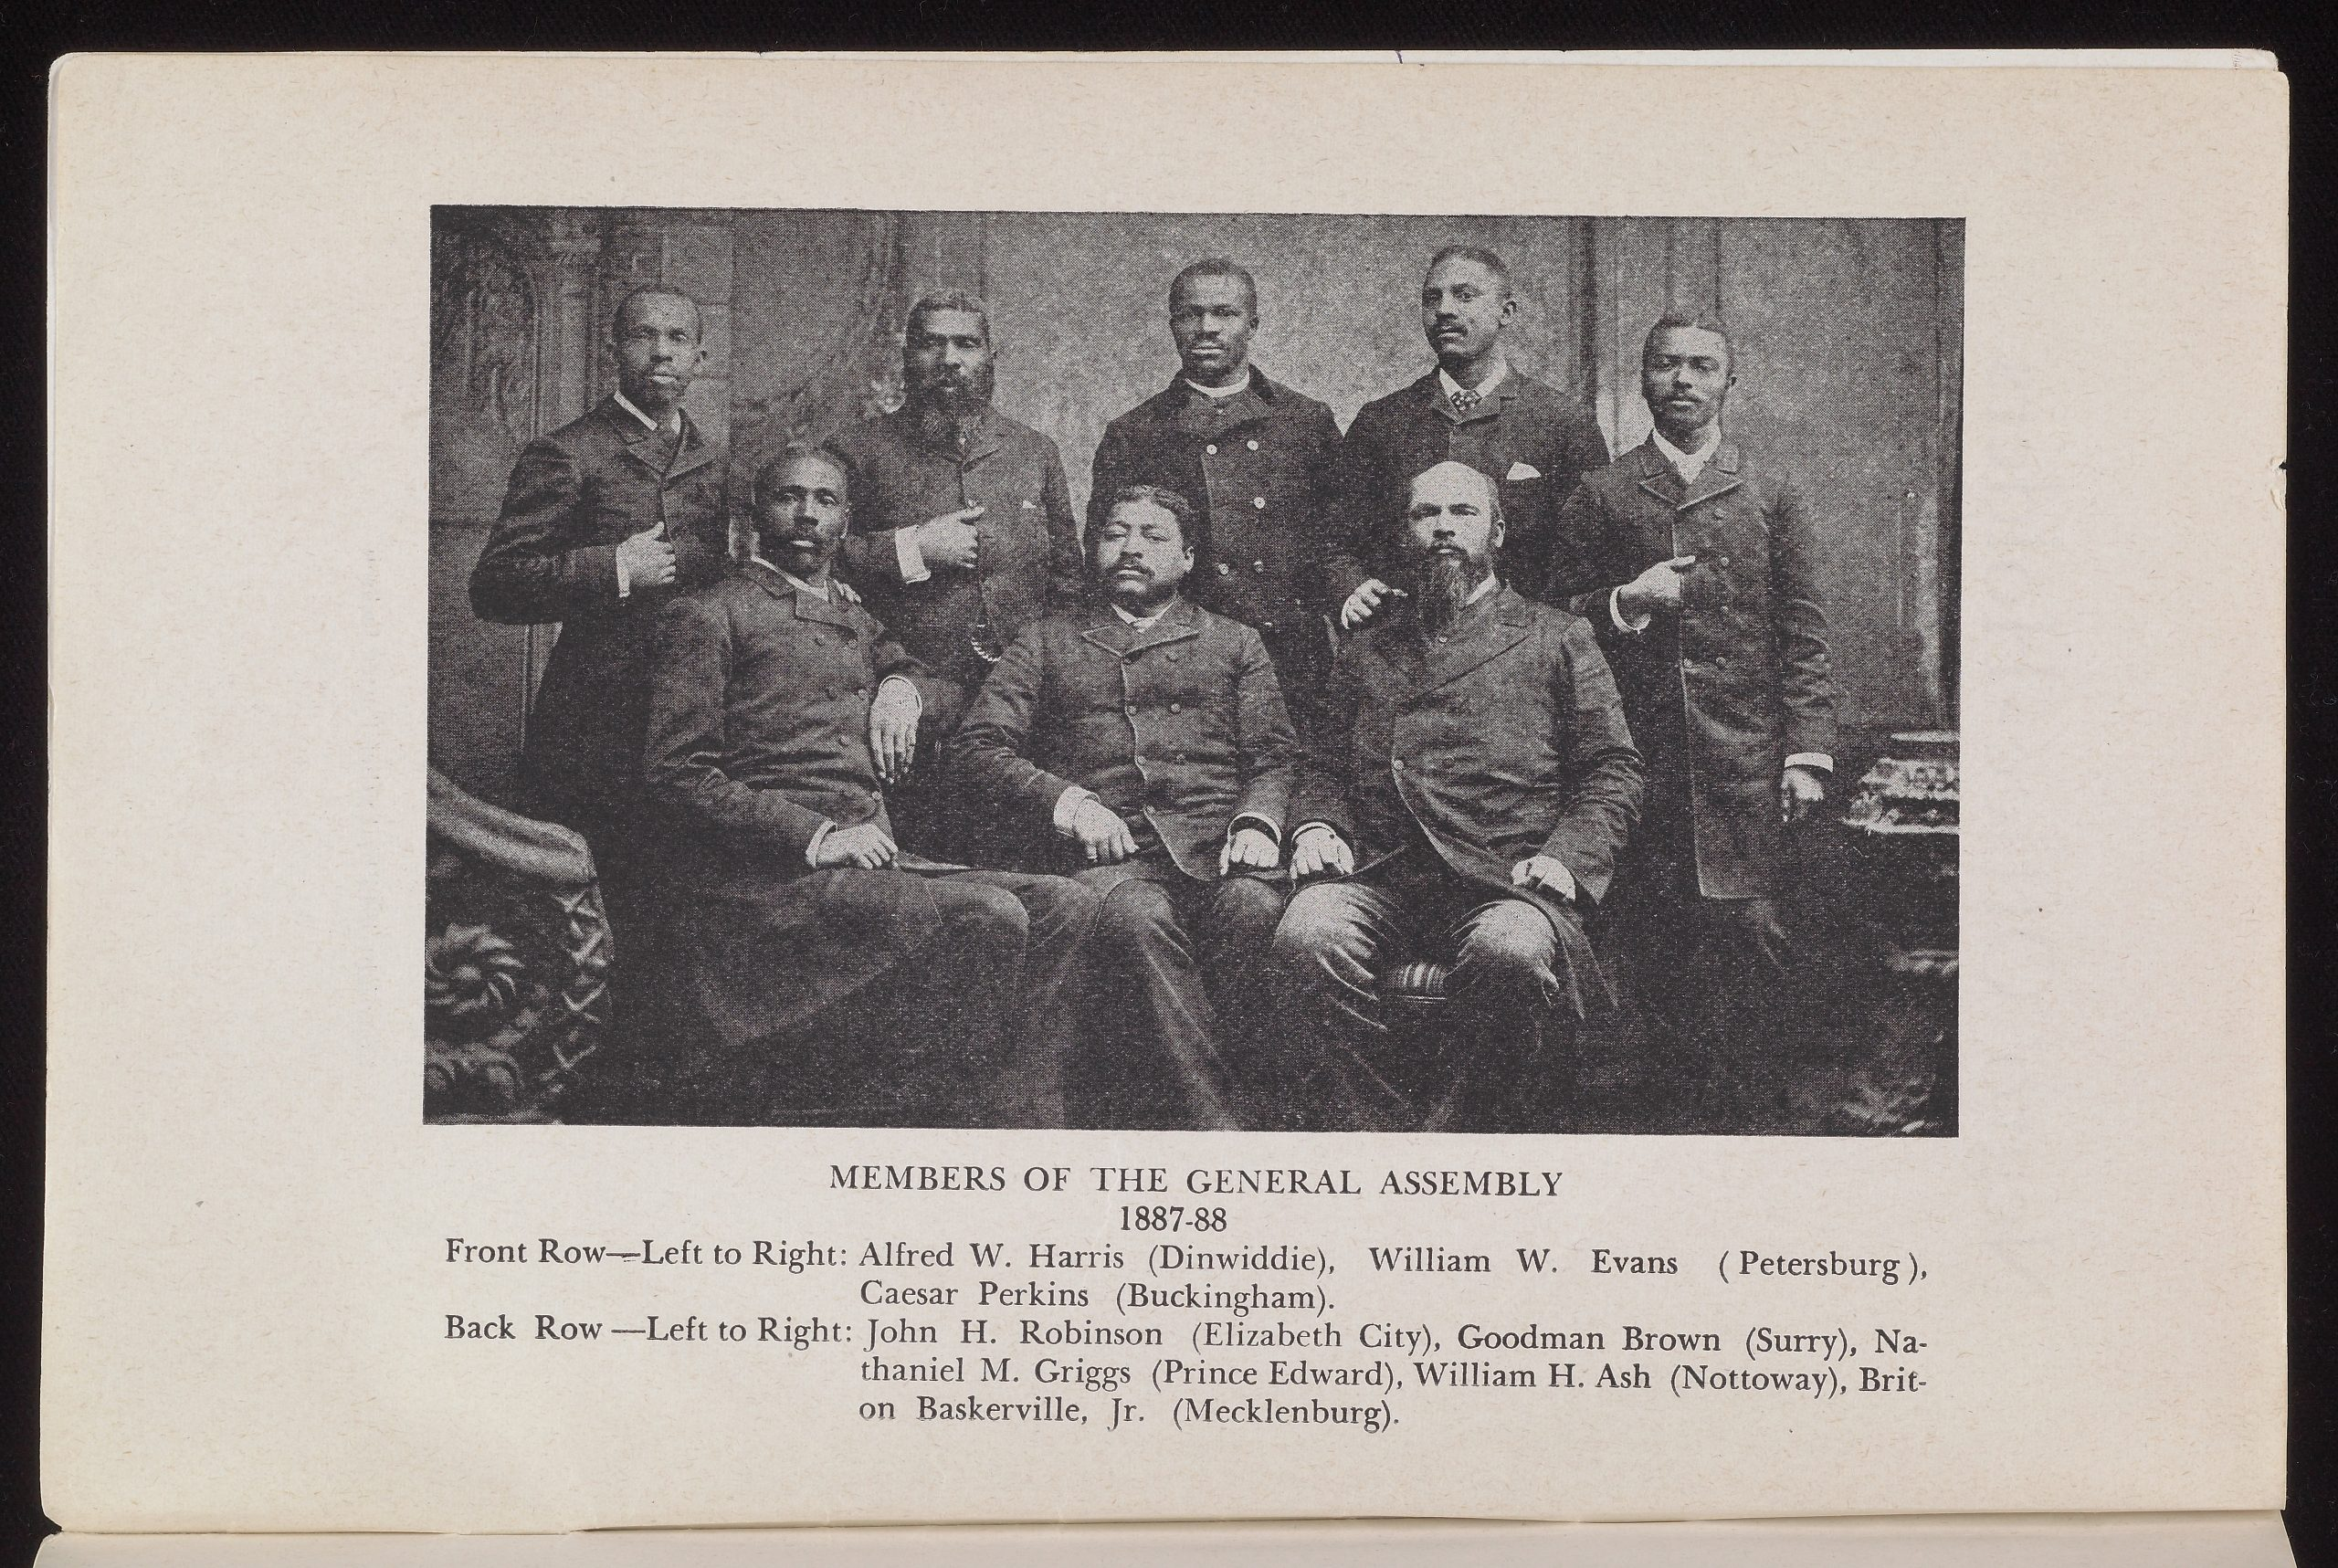 Members of the General Assembly 1887—88